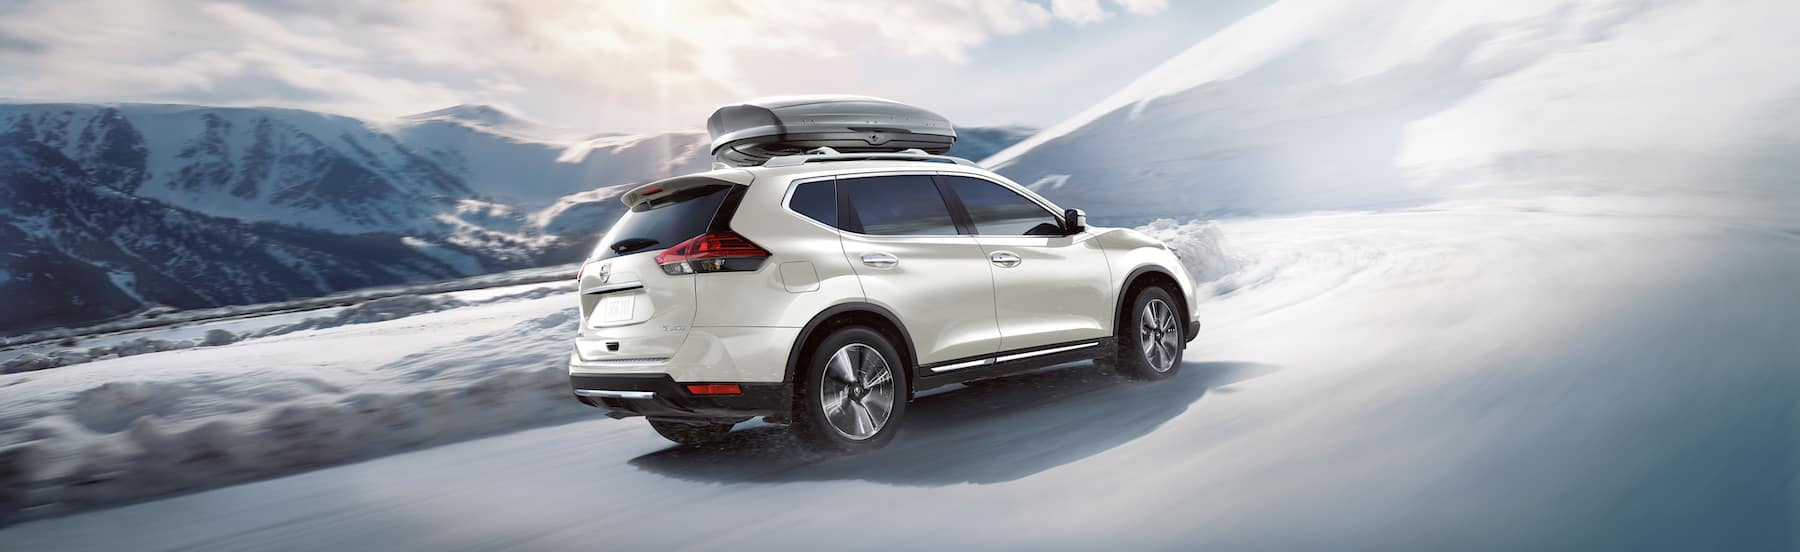 The 2020 Rogue model features at Boch Nissan South in North Attleboro | the 2020 rogue driving in the snow